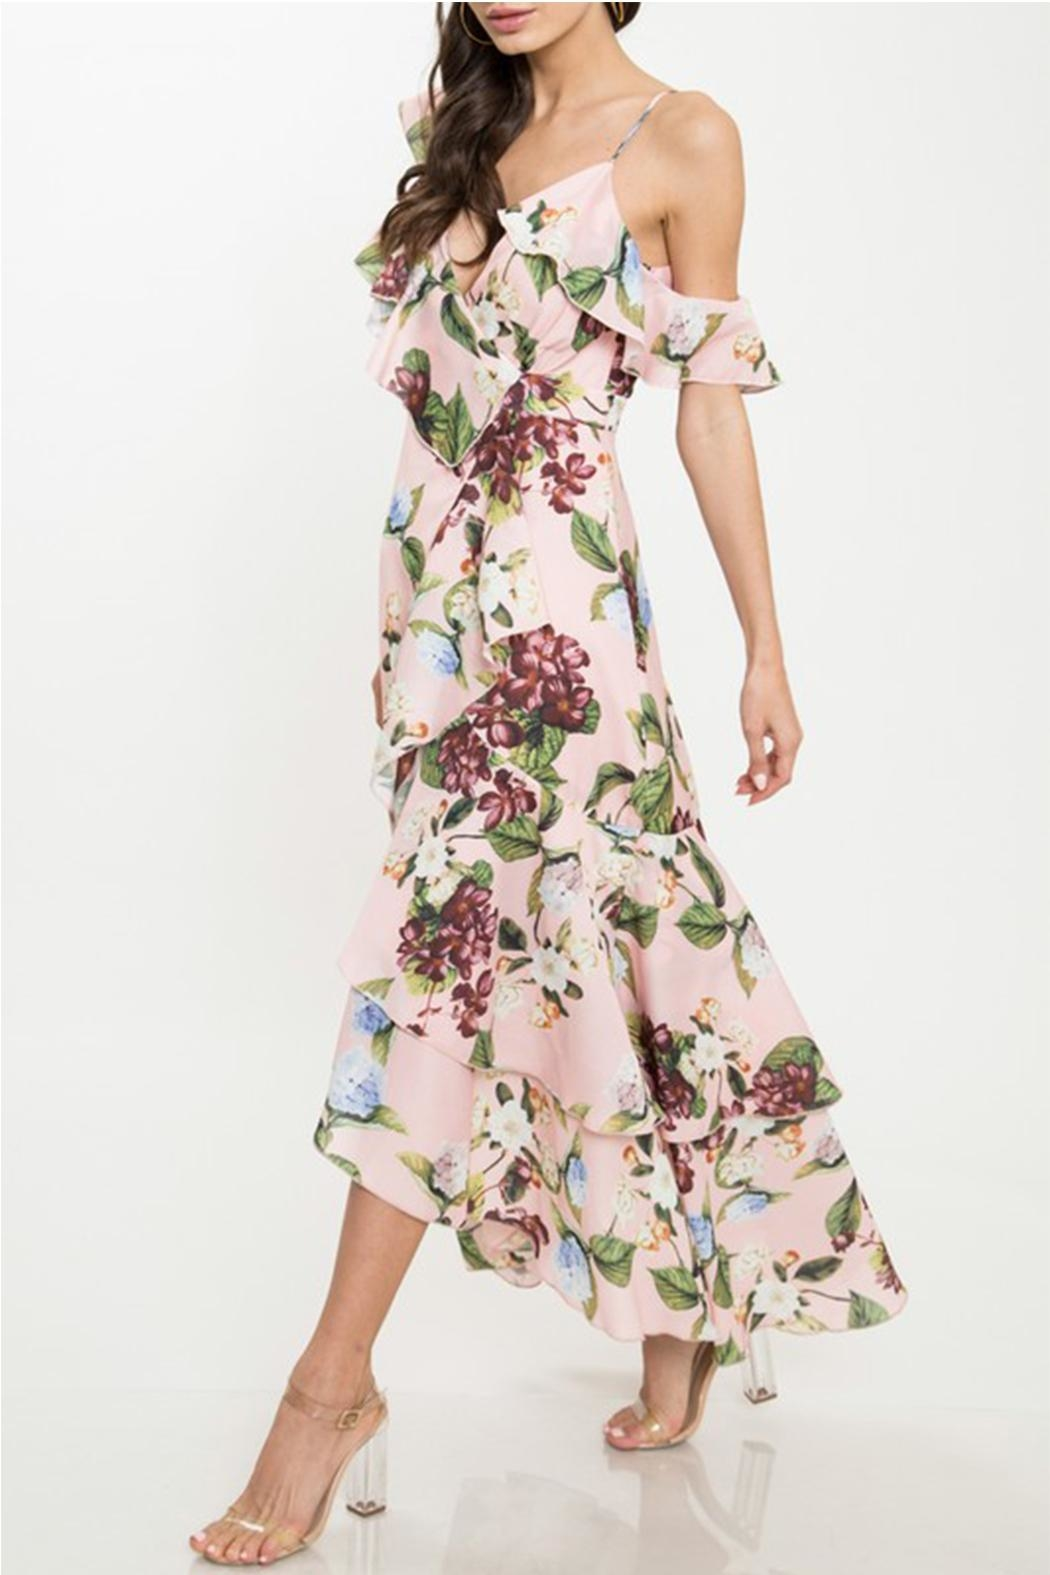 0ae0e6912ee6 Latiste Floral Ruffle Dress from New York by Dor L Dor — Shoptiques